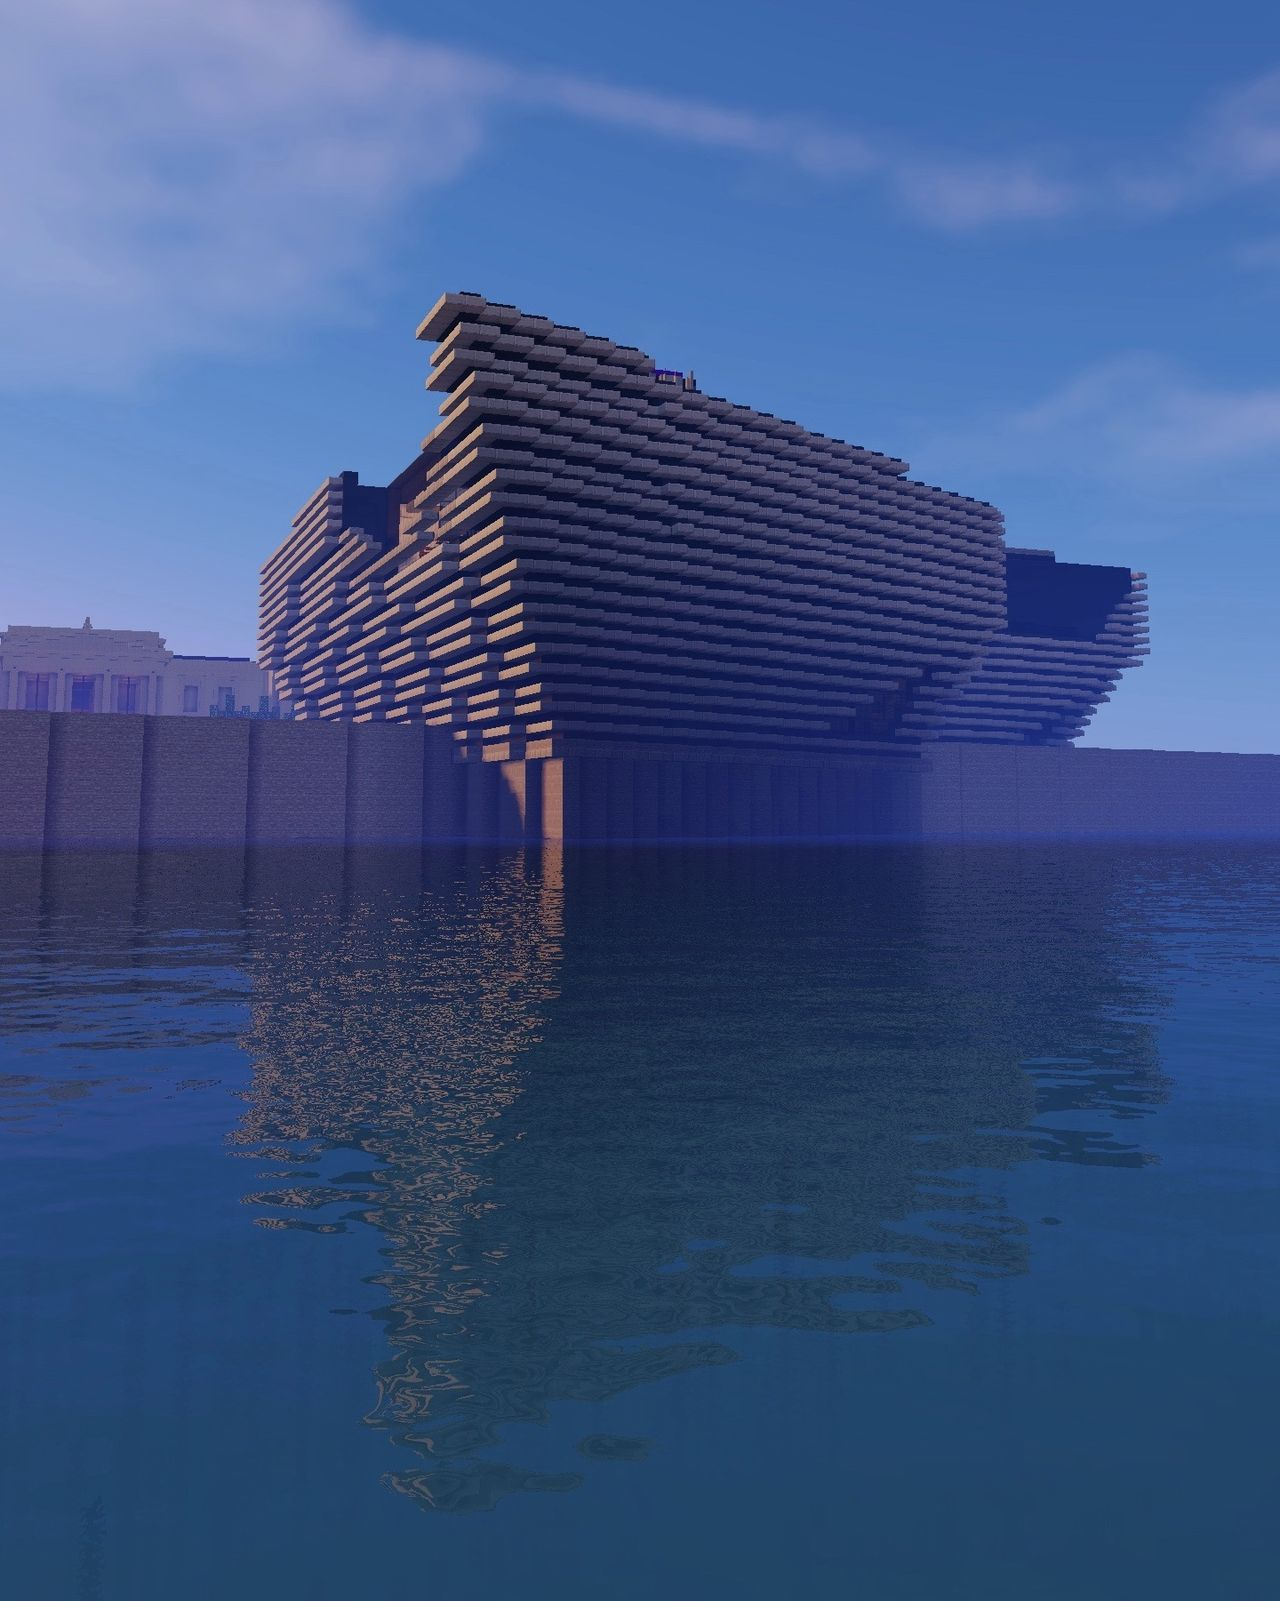 V&A Dundee's building recreated in Minecraft with a bright blue sky around it.